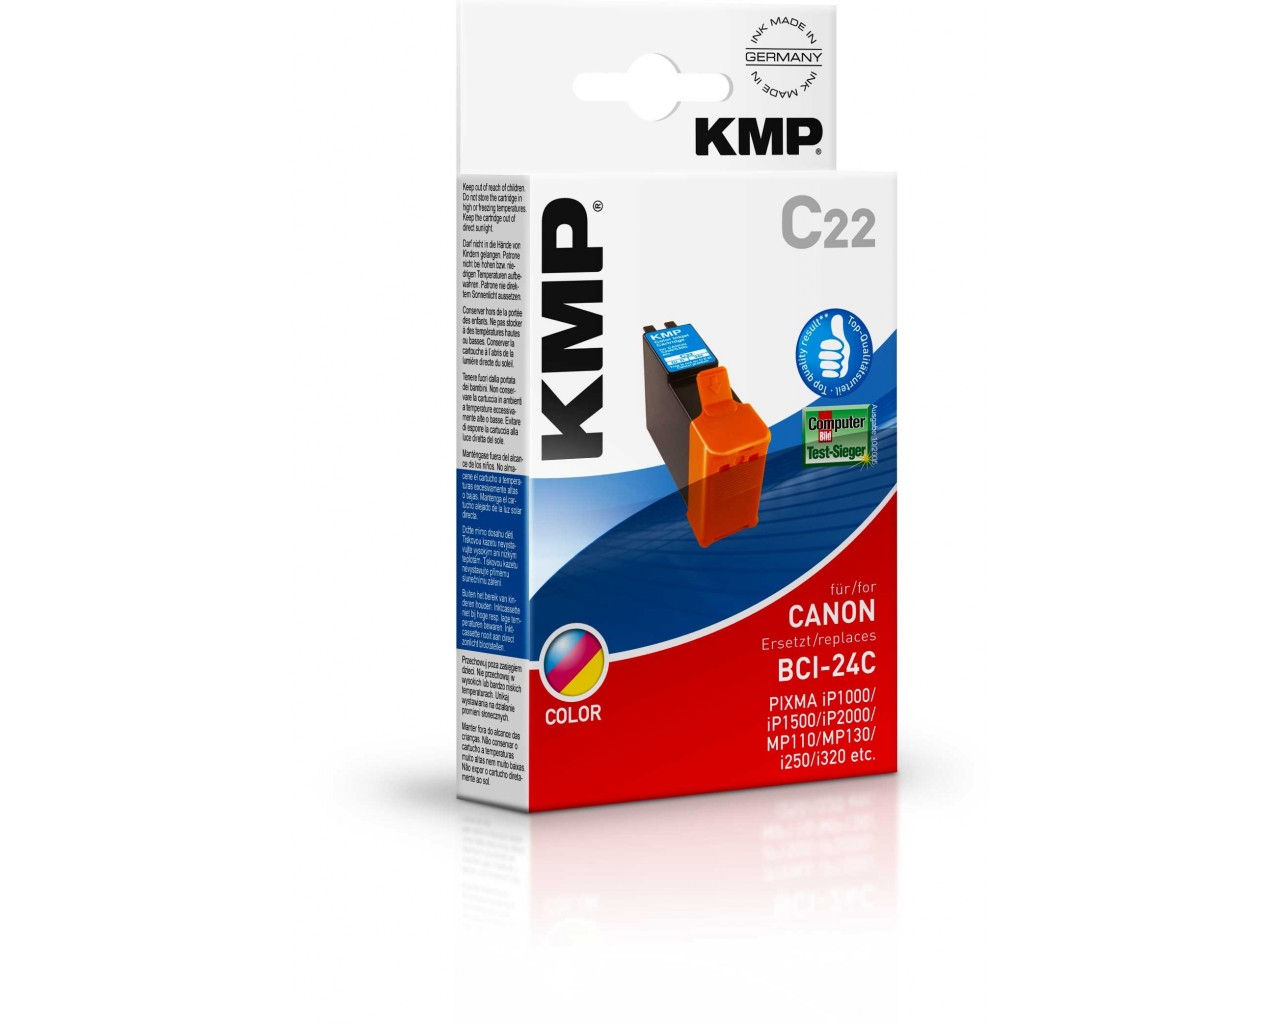 KMP Canon C22 ink cartridge color 15ml